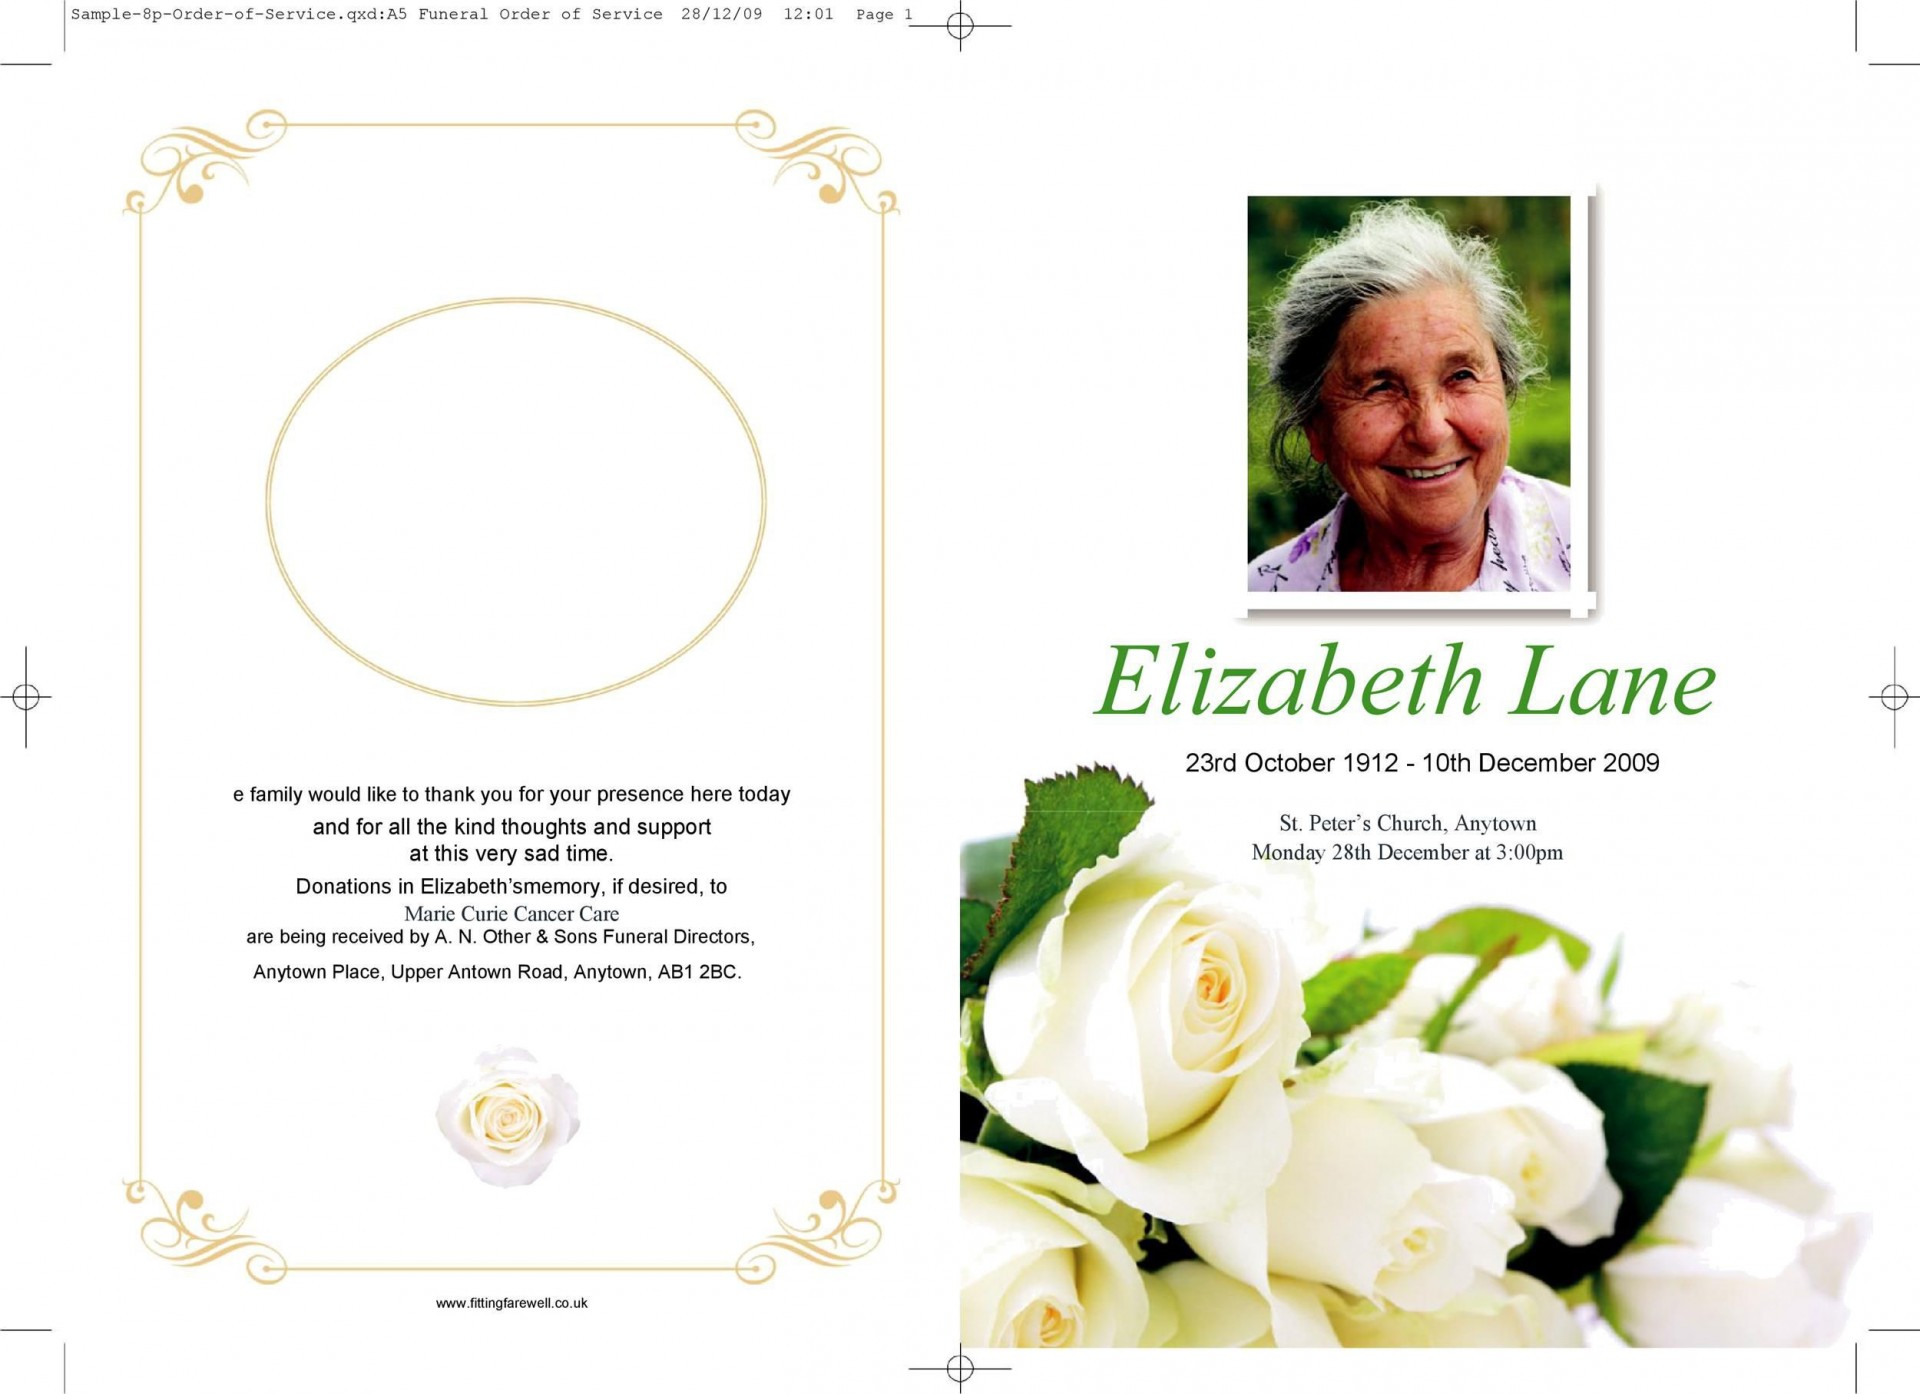 009 Remarkable Free Download Template For Funeral Program High Resolution 1920